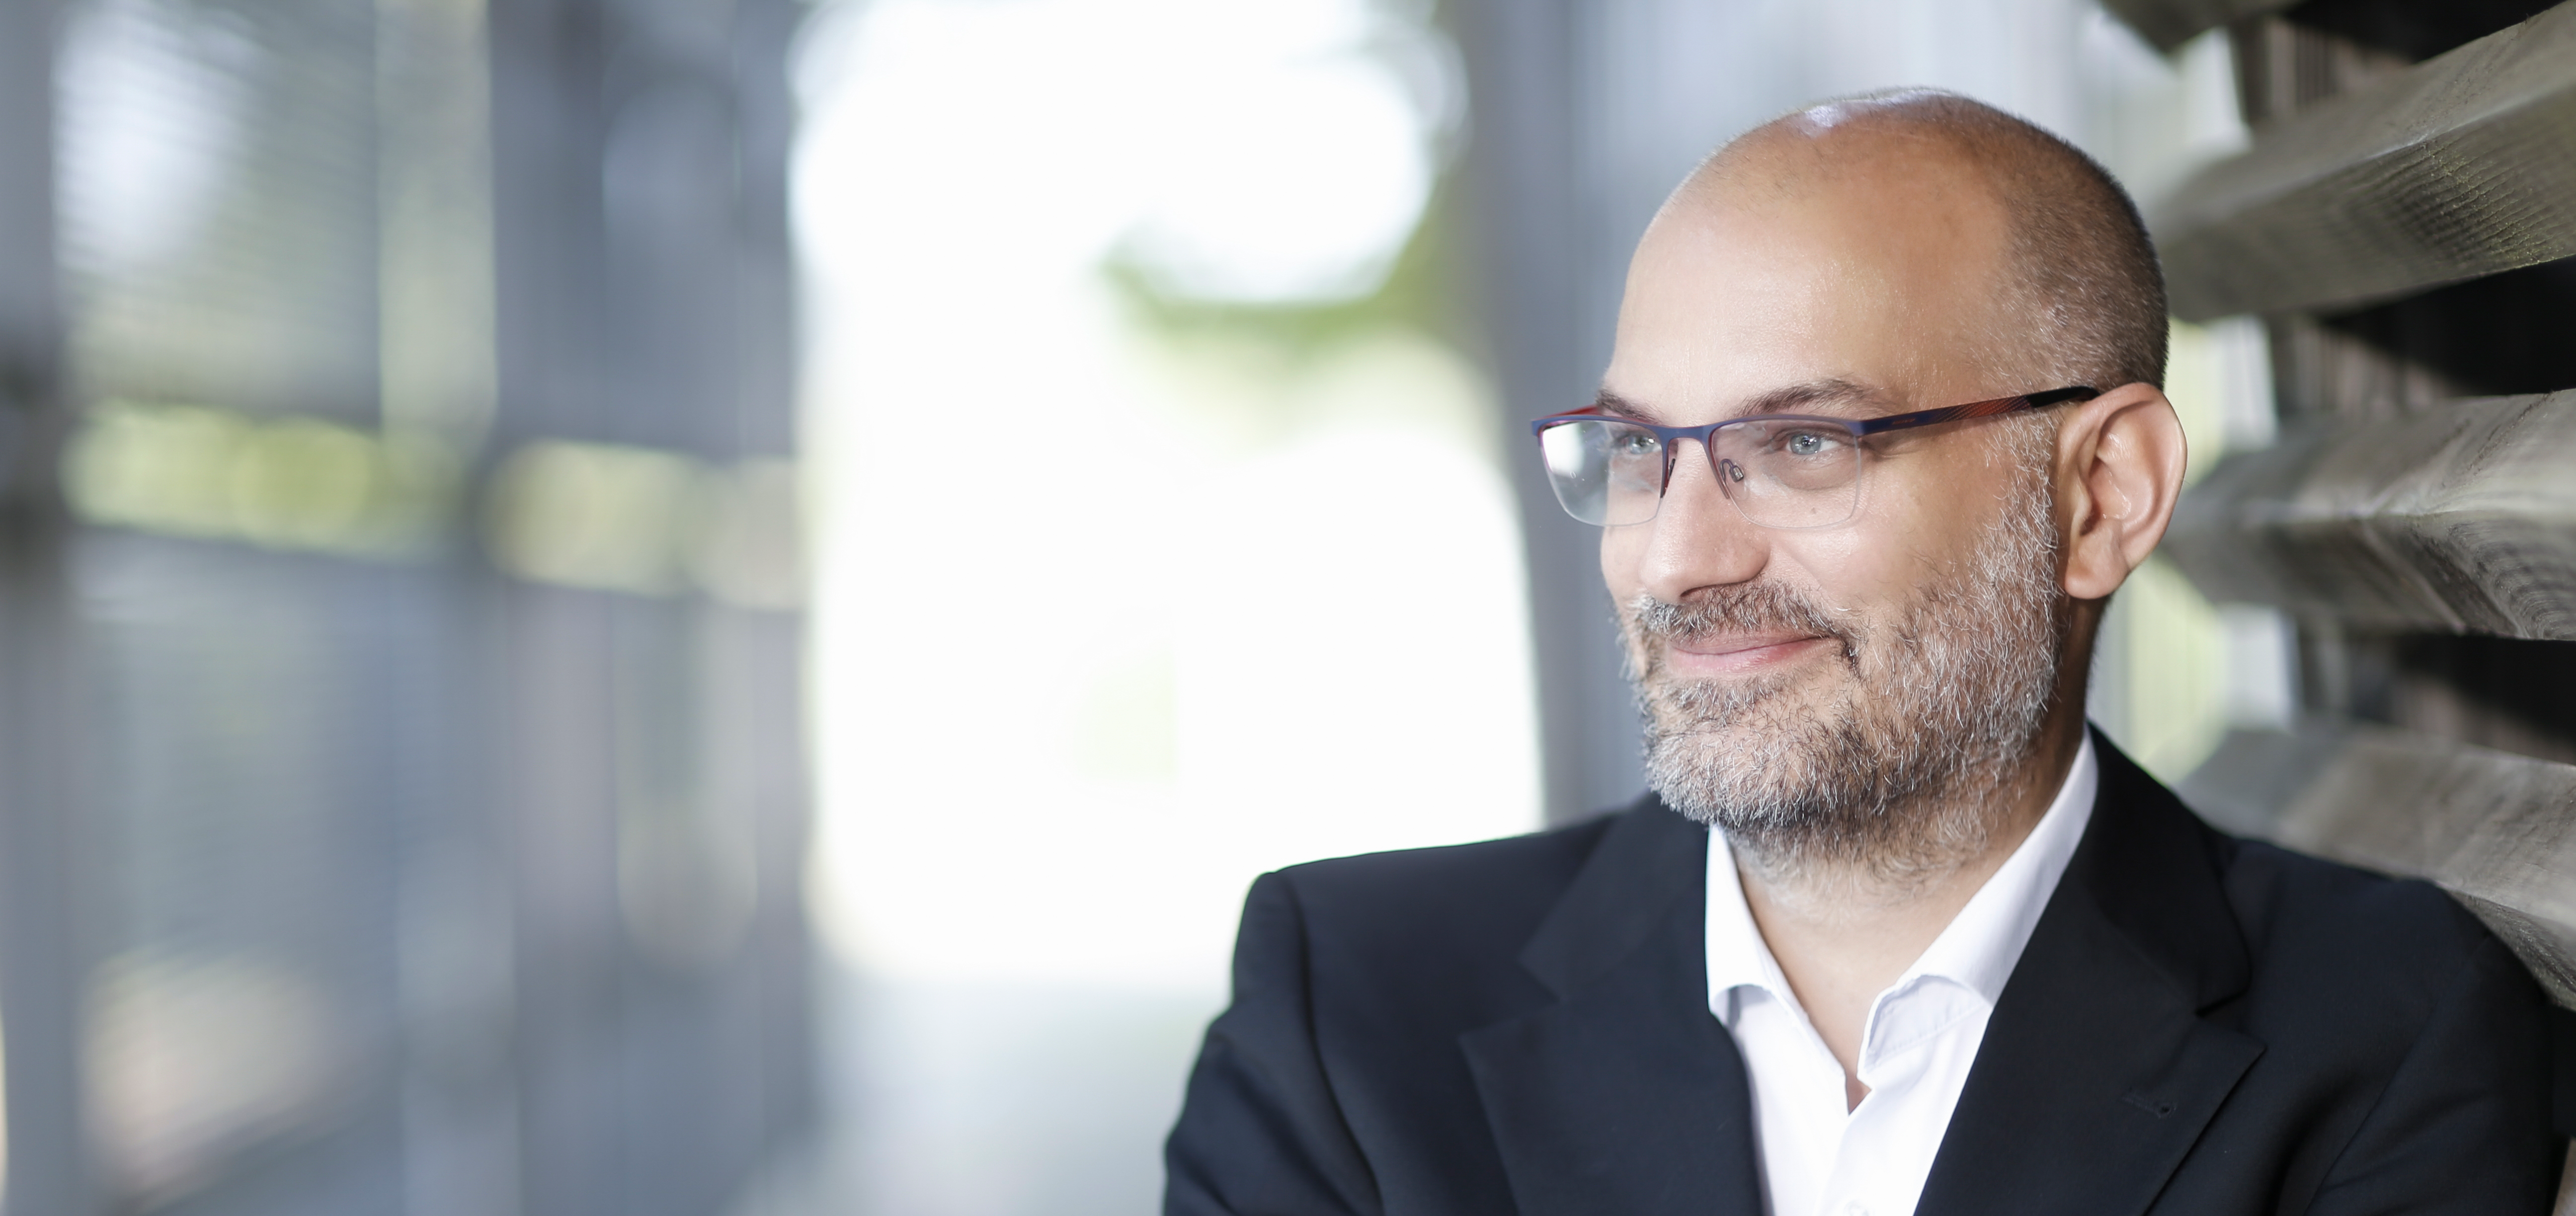 Expanding horizons: welcoming Alexander Schacht and our new Launch and Commercialisation business unit